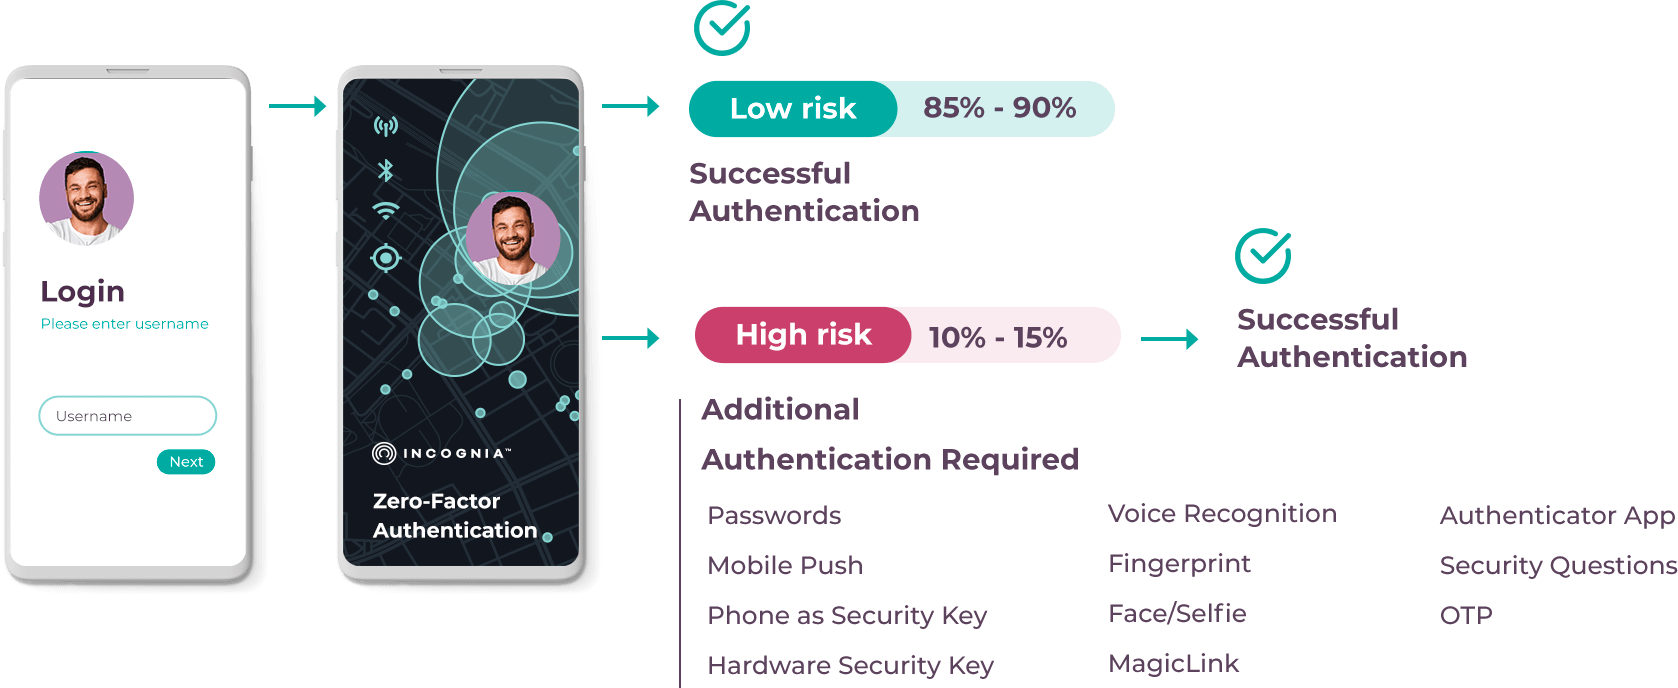 location as trusted signal for authentication